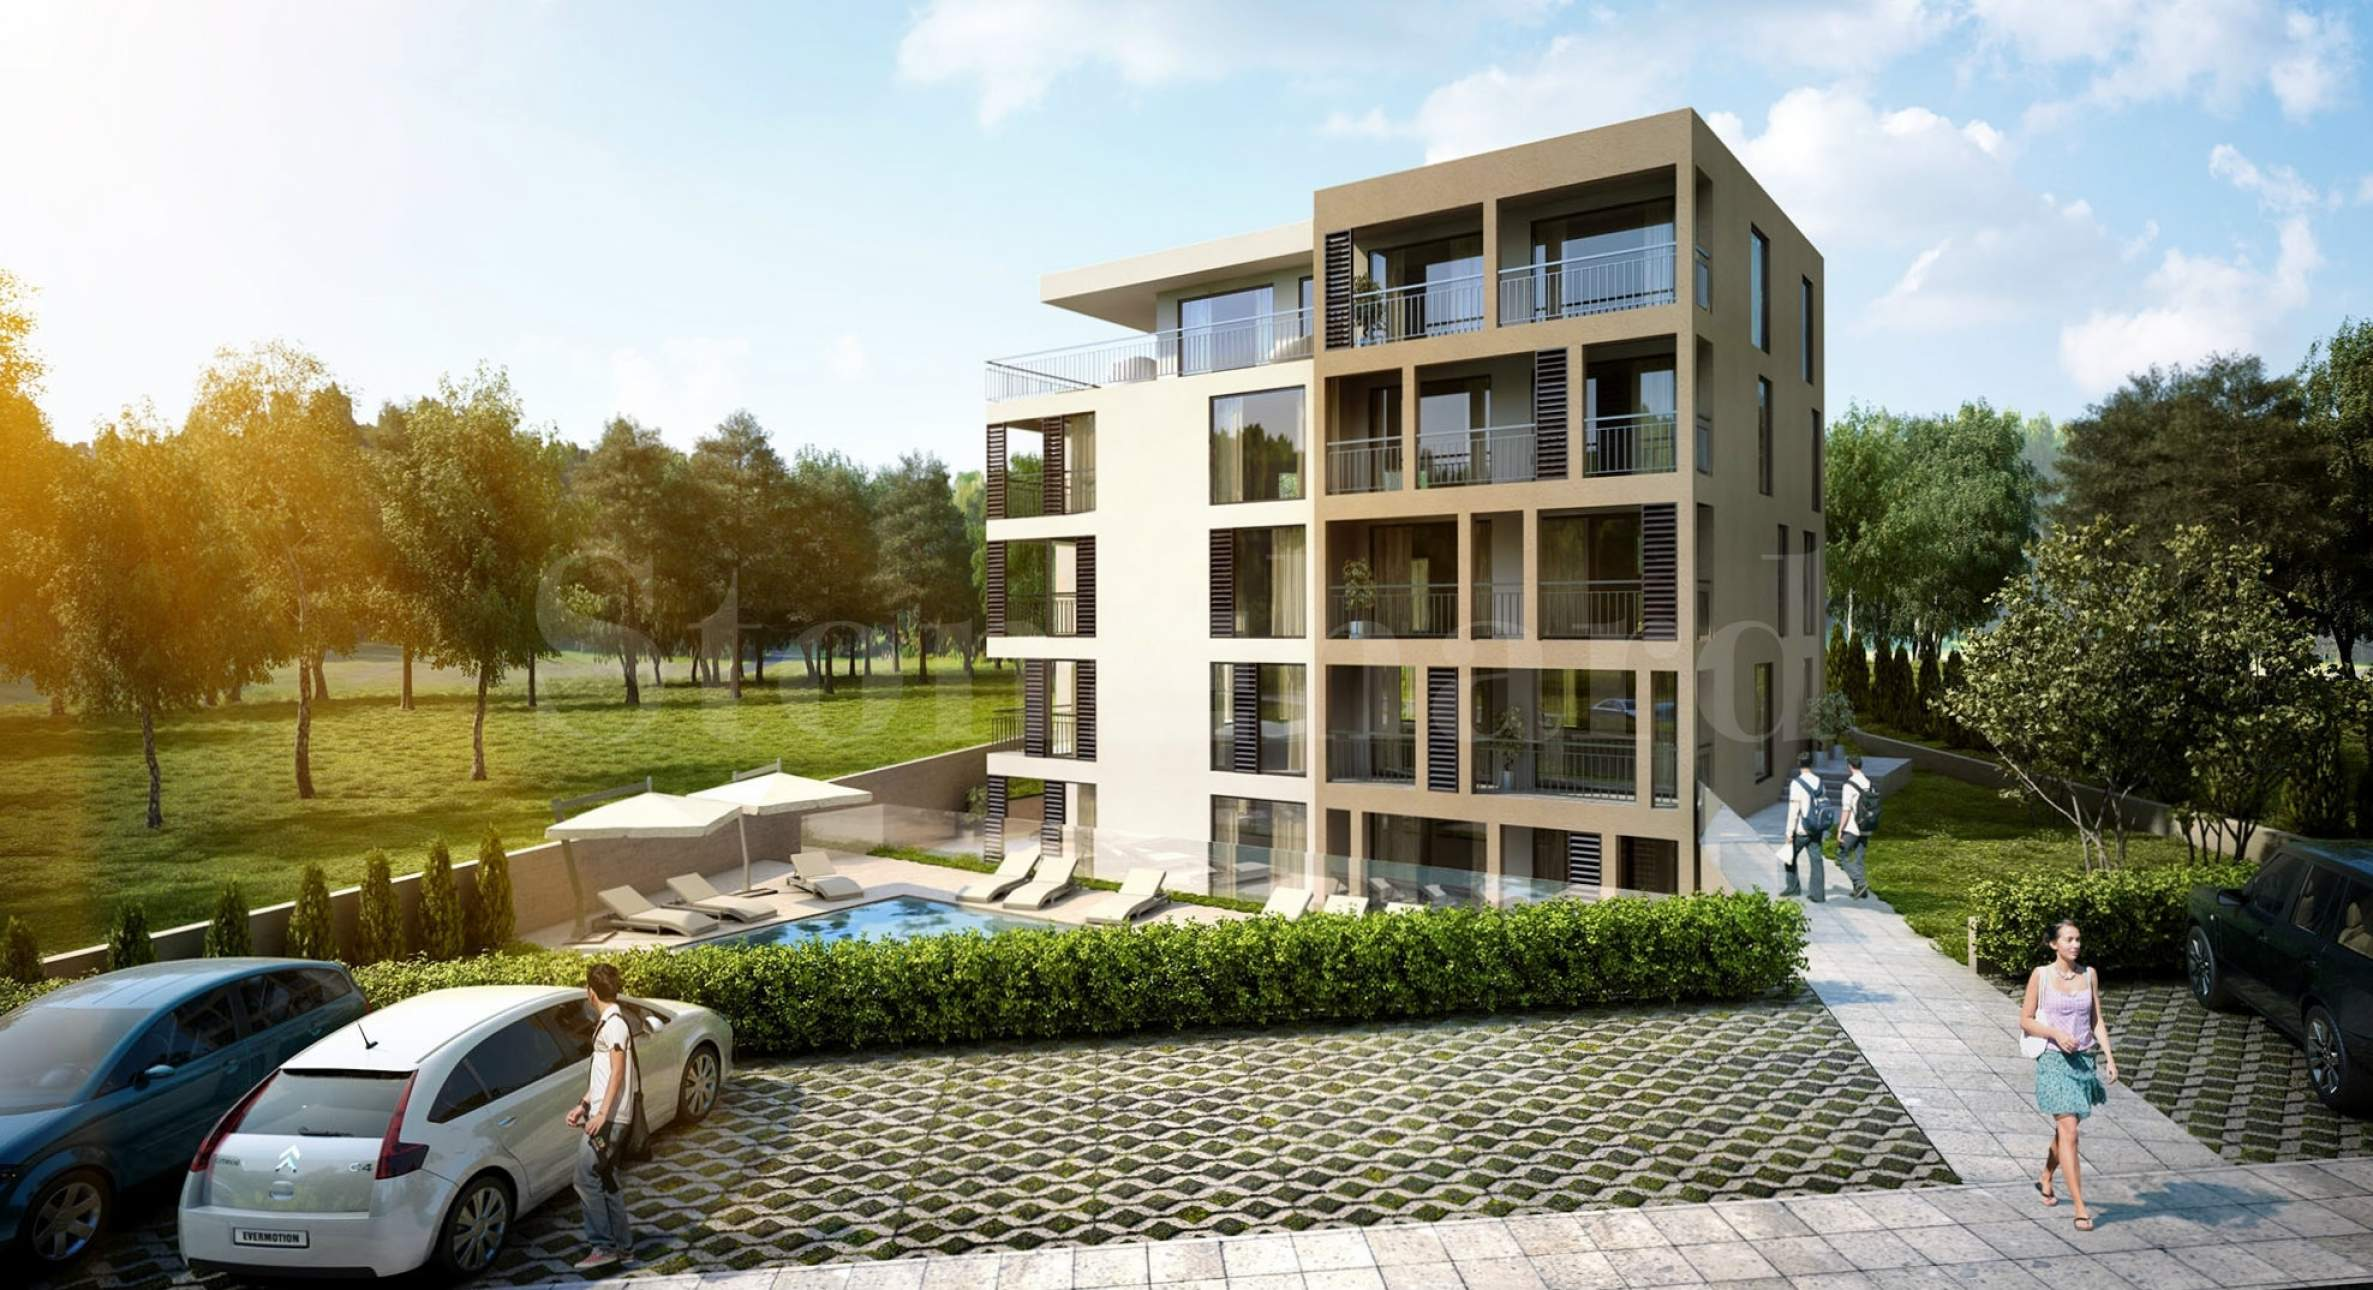 Turn-key apartments in a new gated complex1 - Stonehard